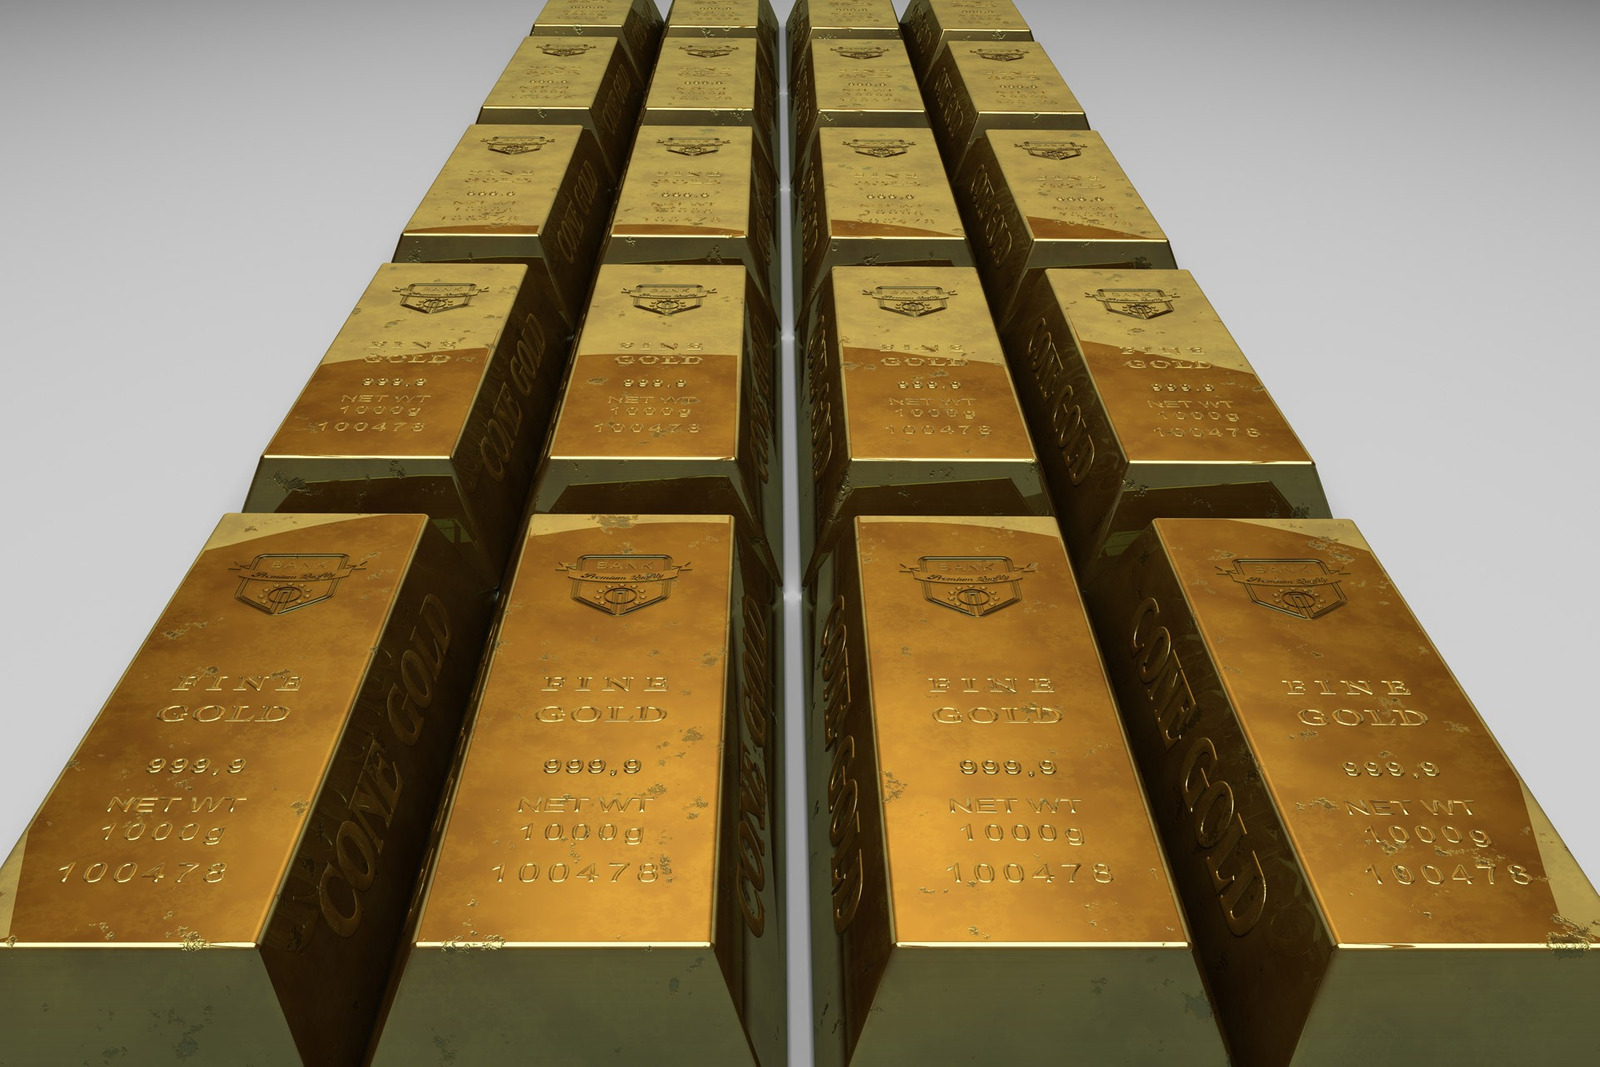 Image of gold bars reflecting the £84m public sector savings delivered through this engagement